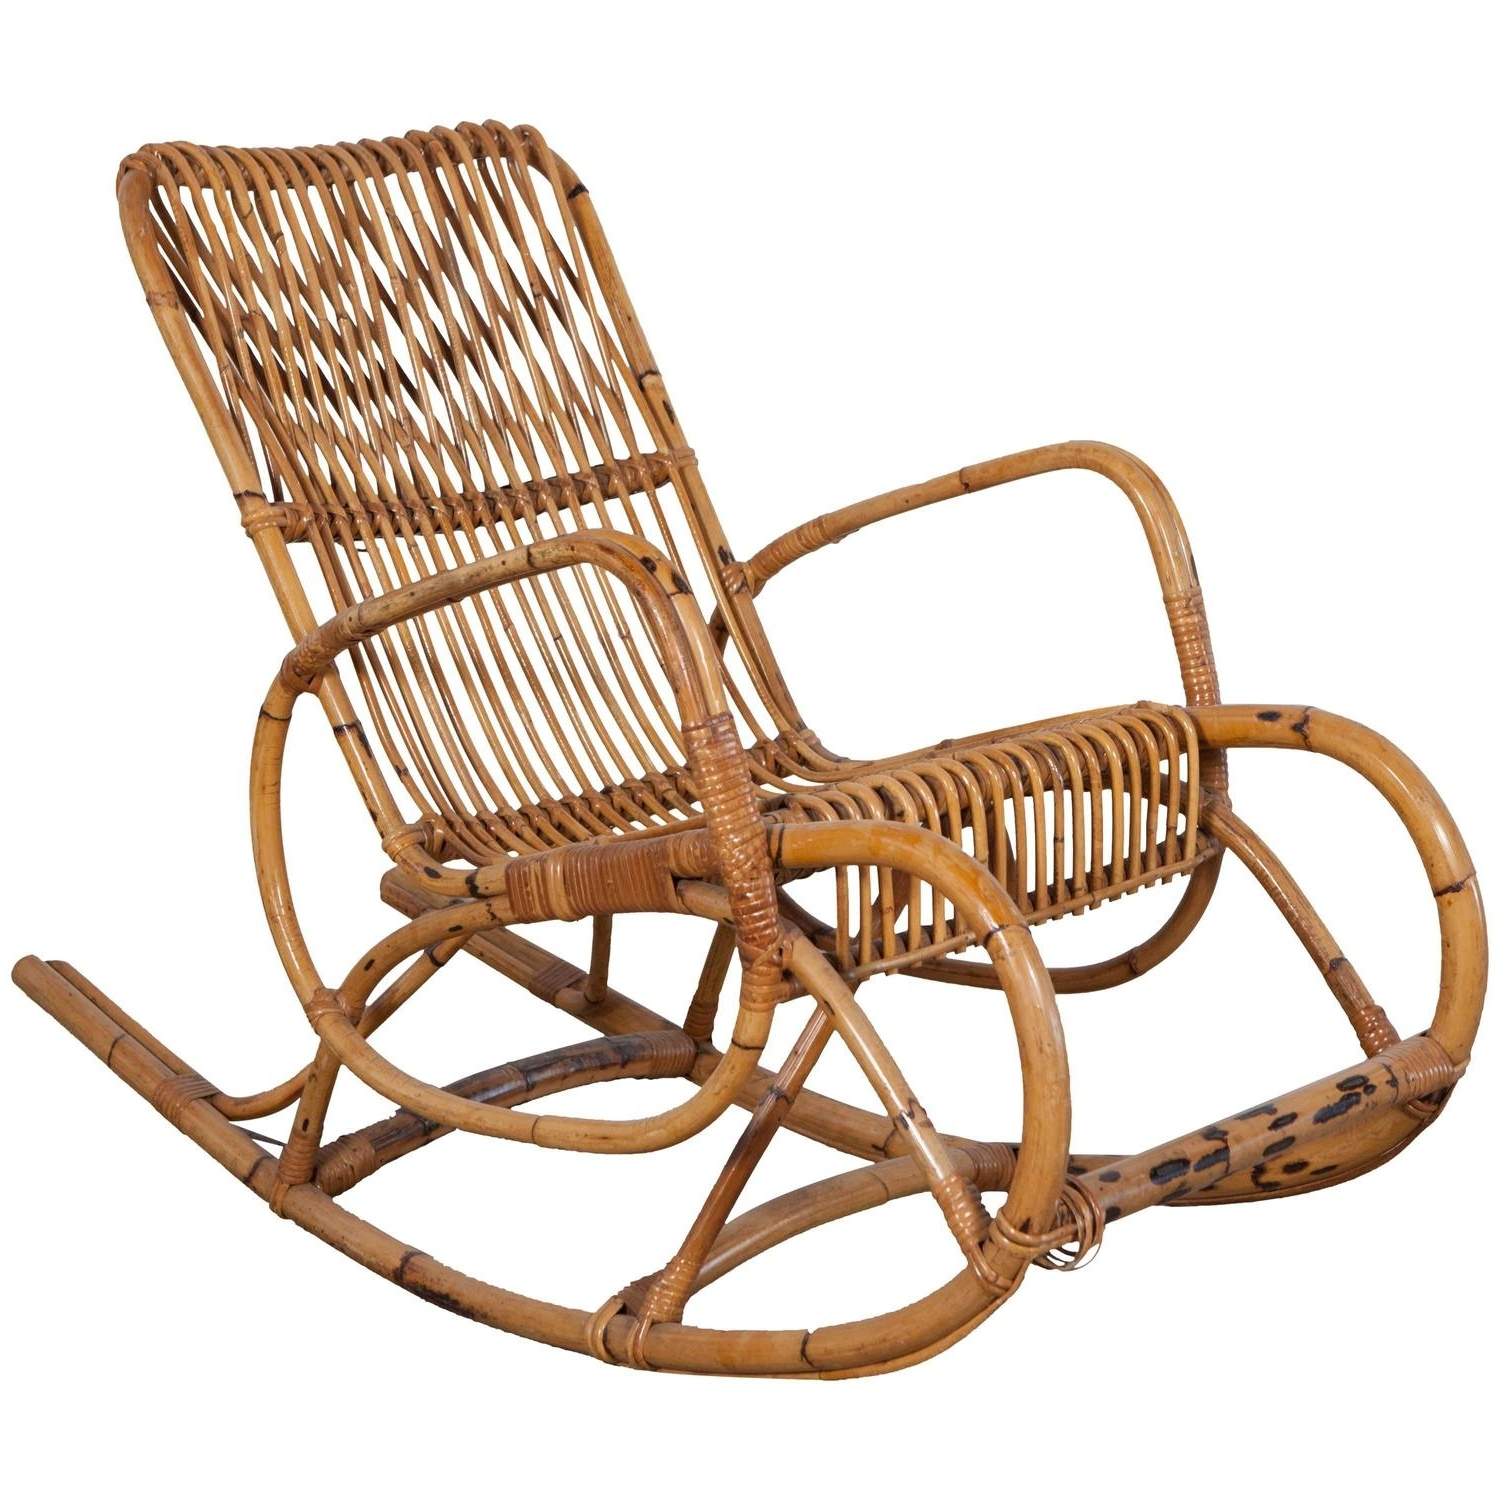 Vintage Italian Bamboo Rocking Chair With Square Arms At 1Stdibs Throughout Well Liked Rocking Chairs (Gallery 17 of 20)